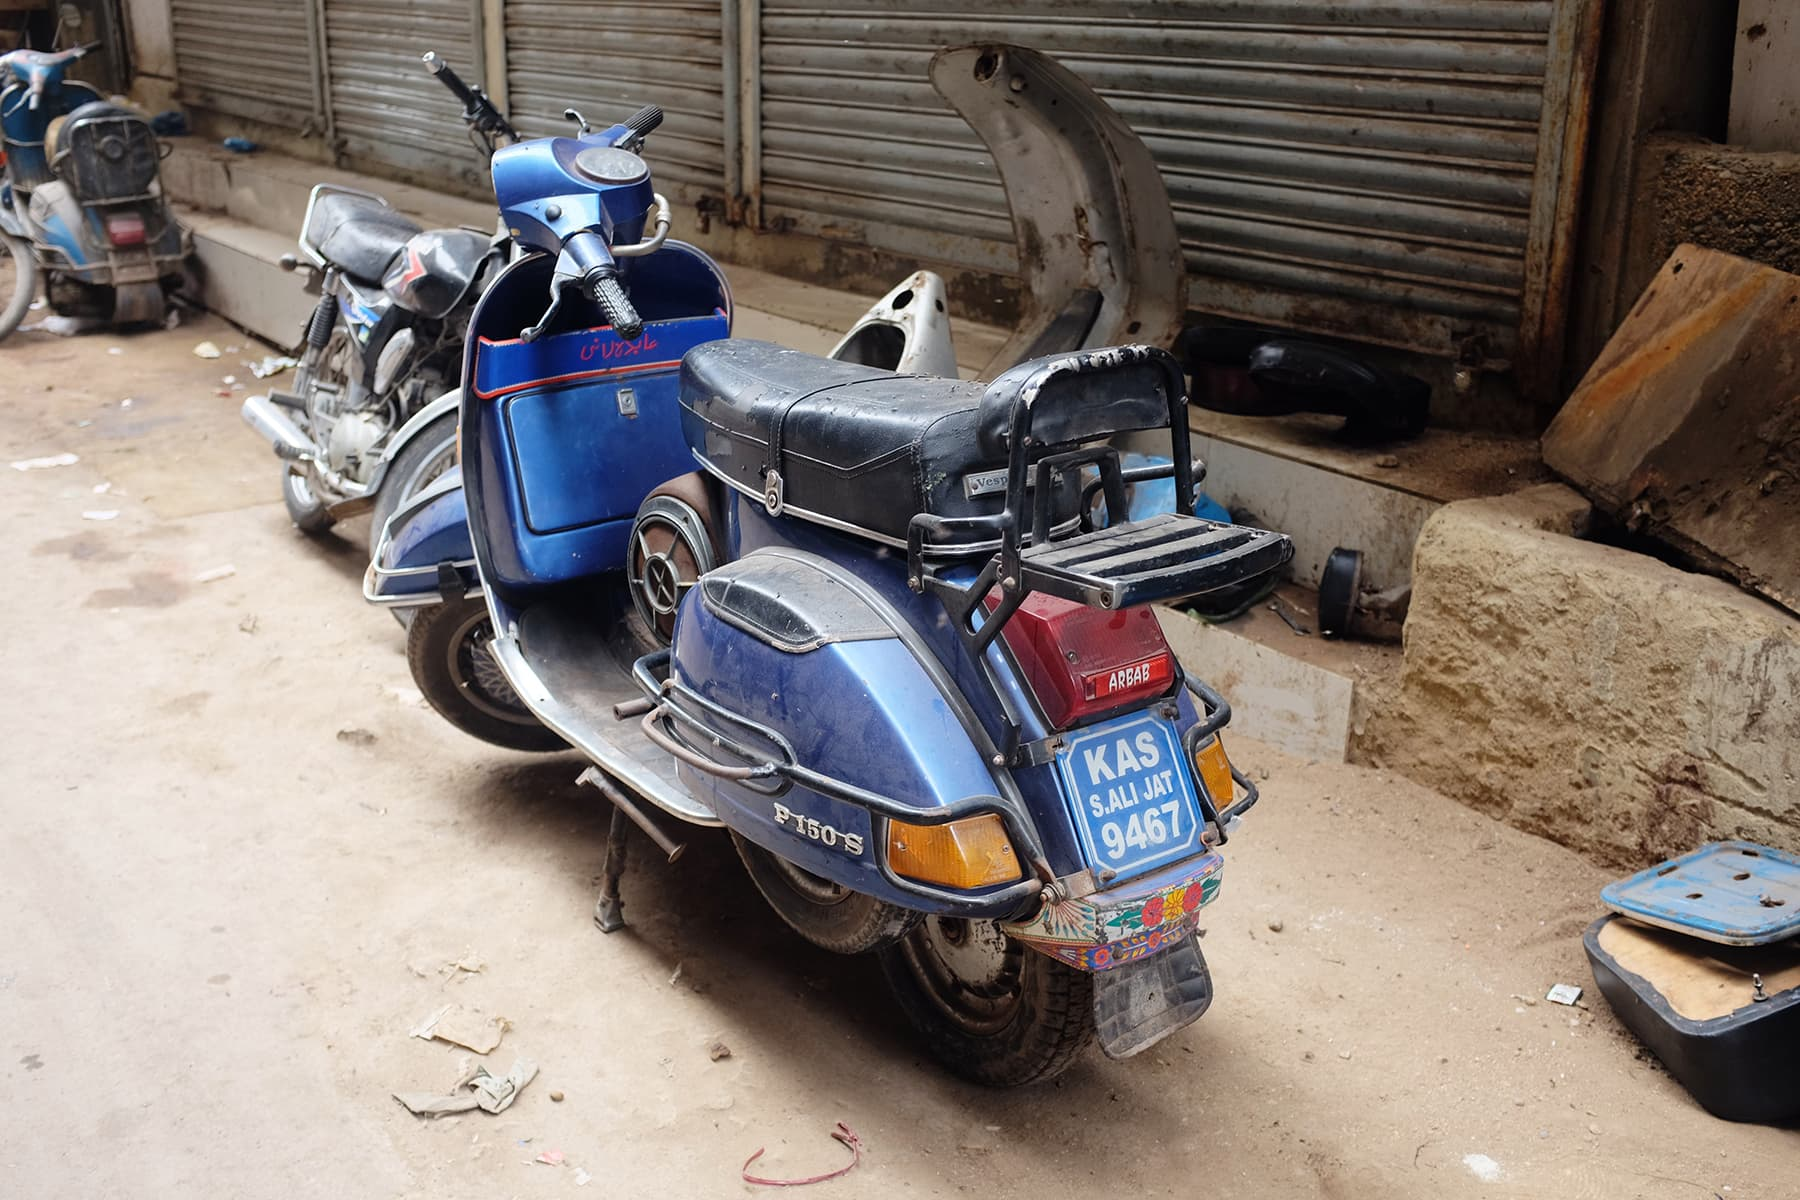 Shehzad shows us different Vespas near his workshop.